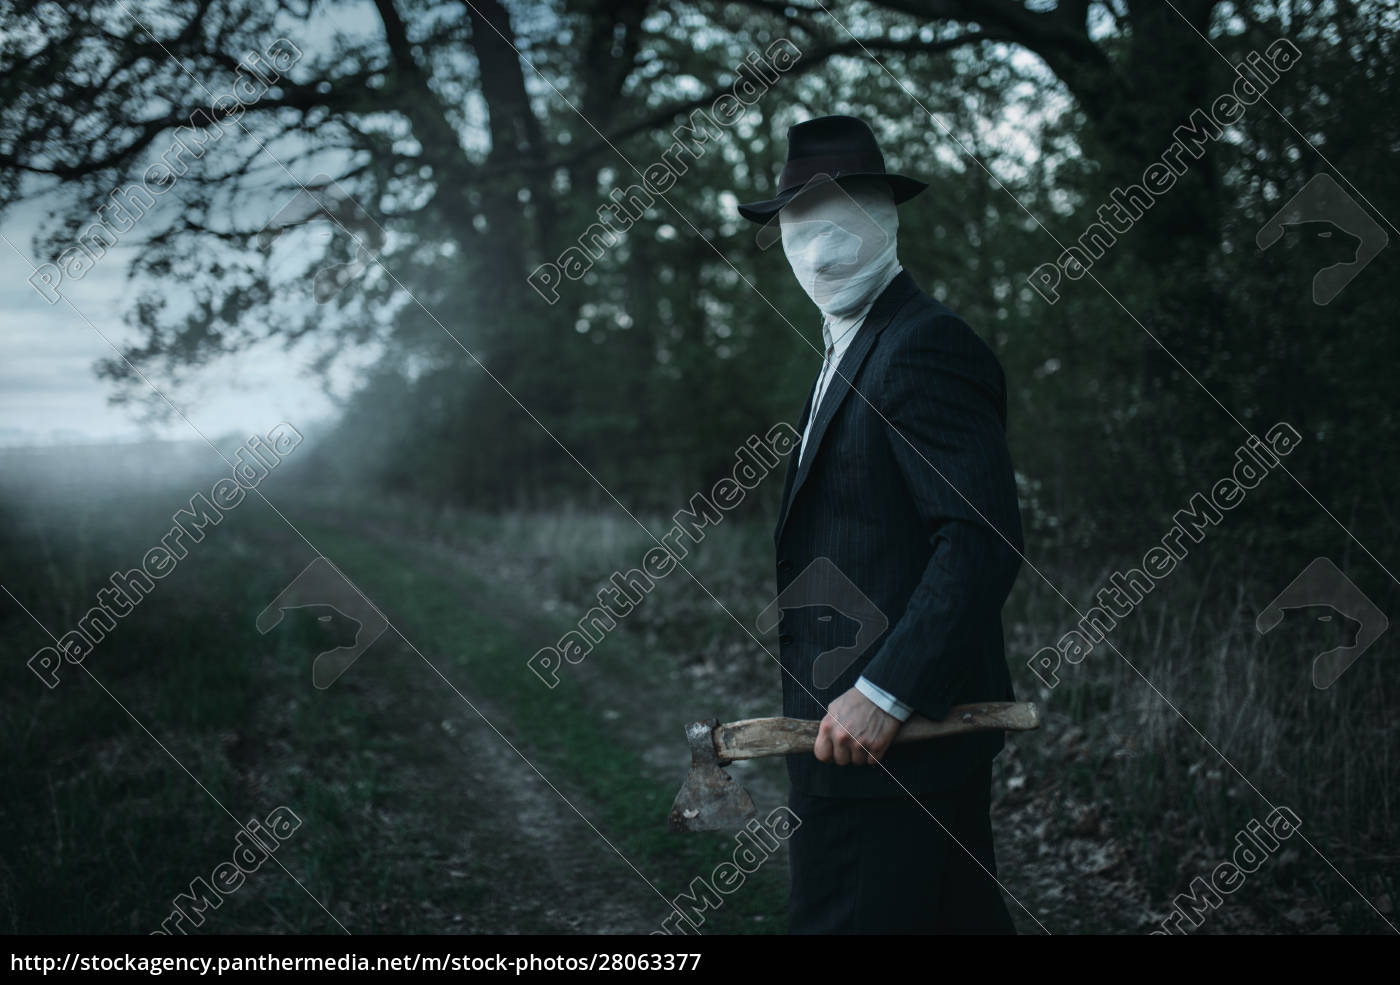 serial, maniac, with, axe, in, forest, - 28063377